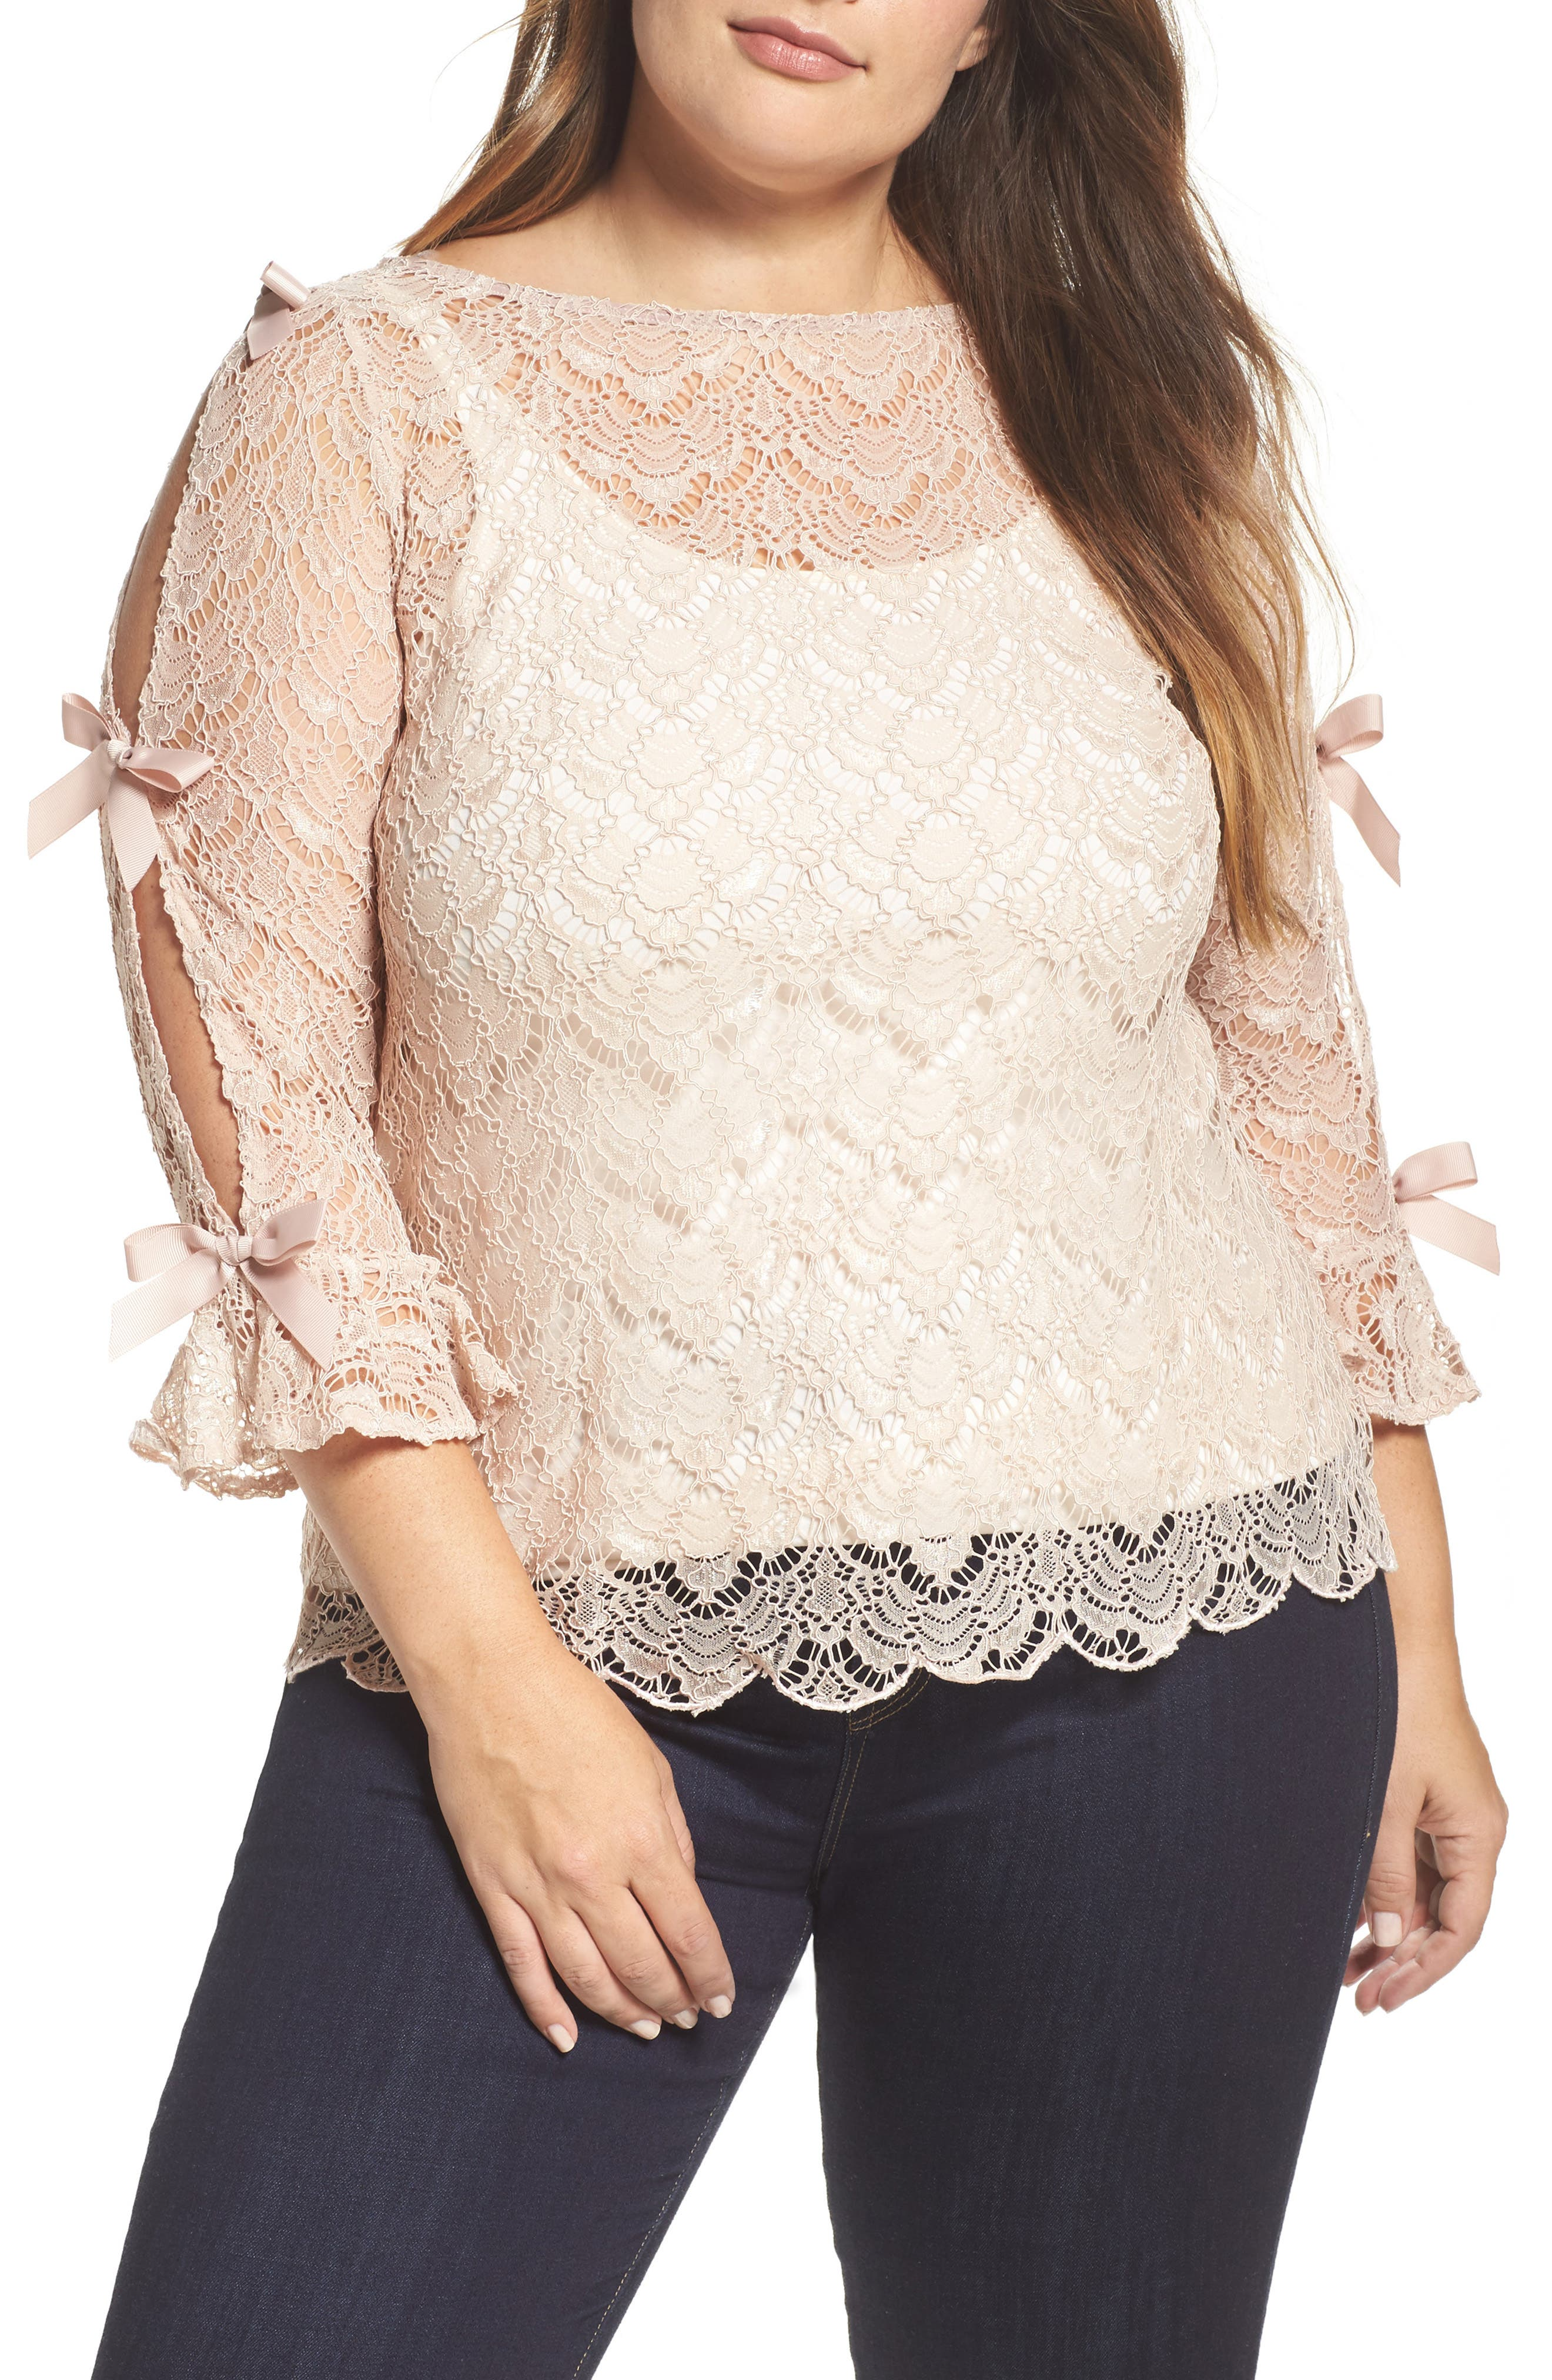 Main Image - ELVI Bow Sleeve Lace Top (Plus Size)